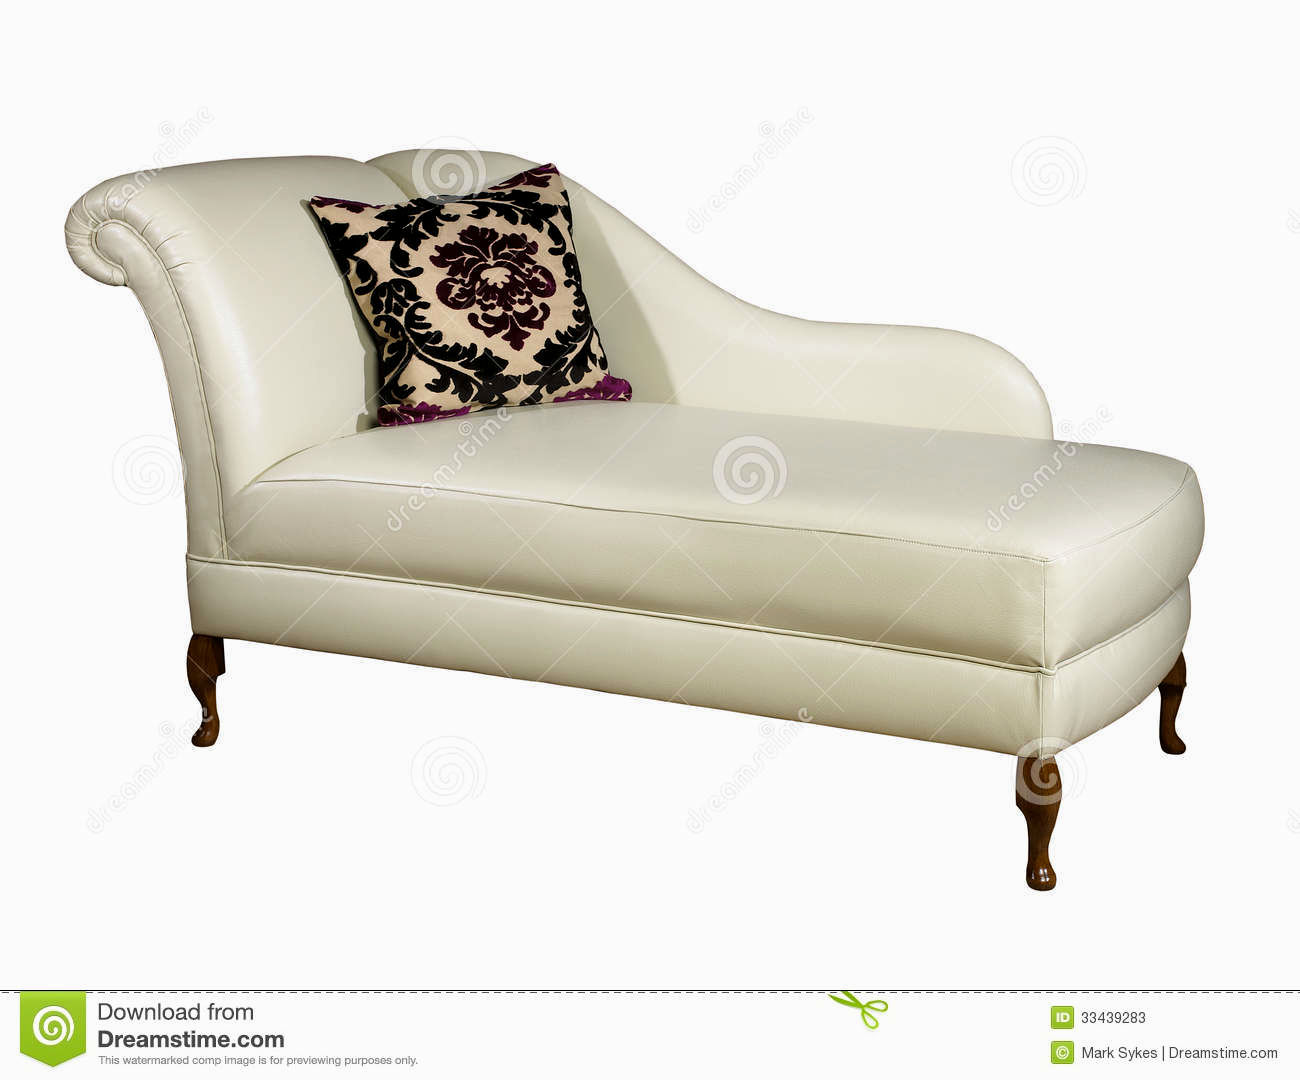 amazing small sectional sofa cheap gallery-Incredible Small Sectional sofa Cheap Image